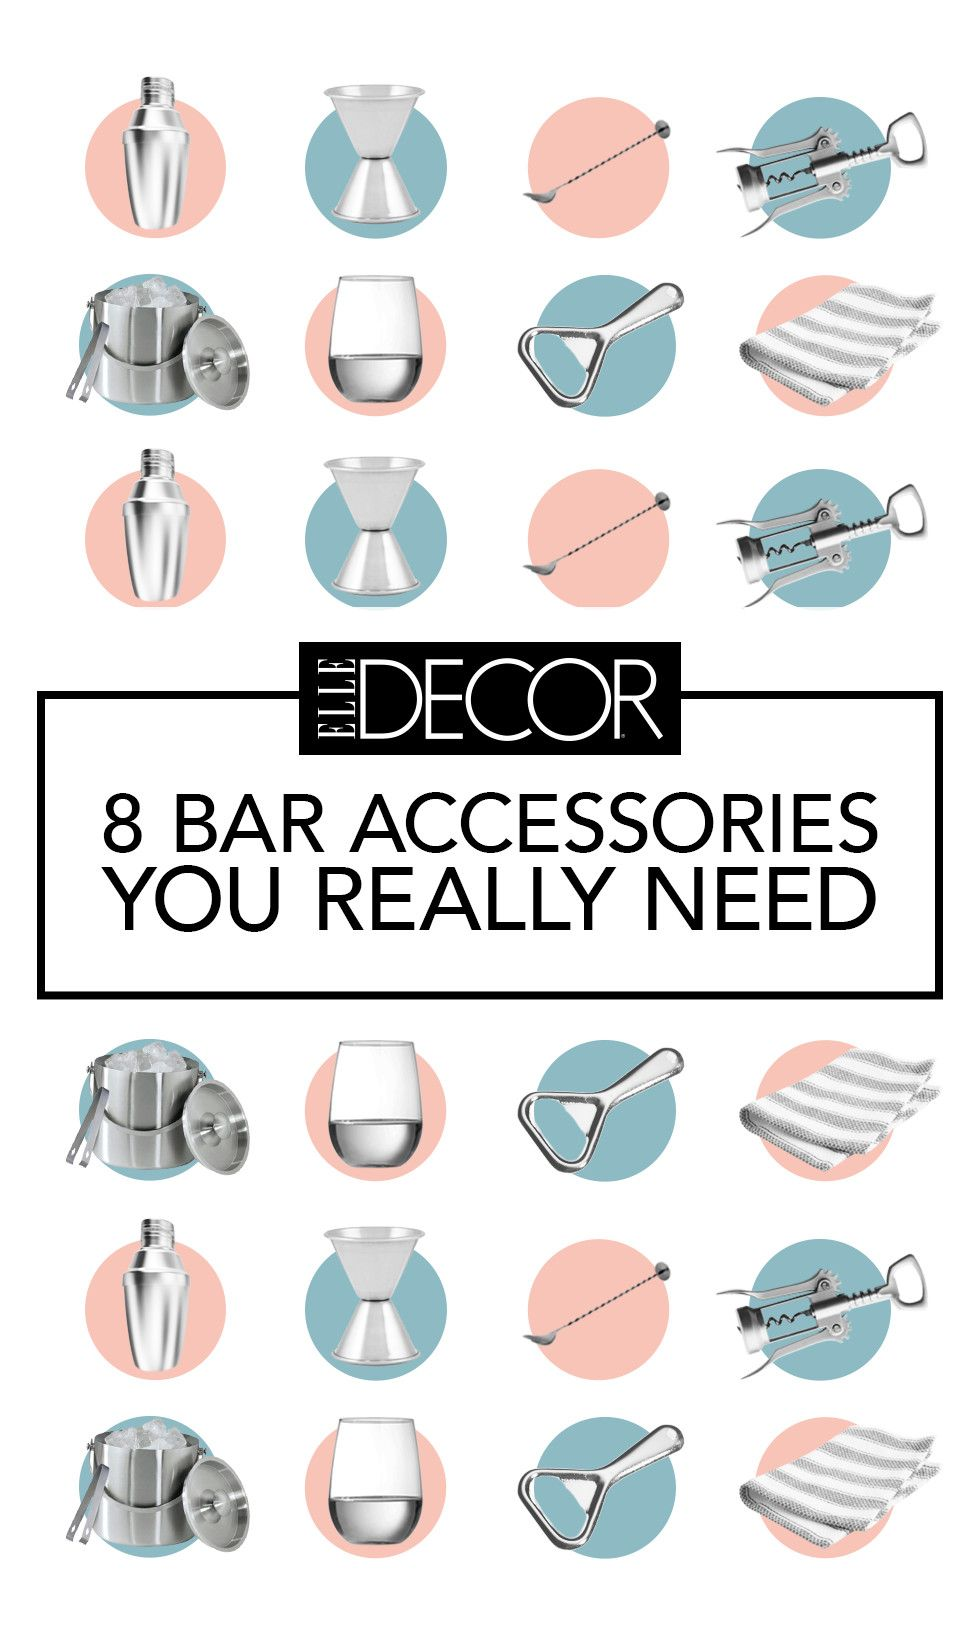 The Only Accessories You Really Need This Summer The Only Accessories You Really Need This Summer new picture